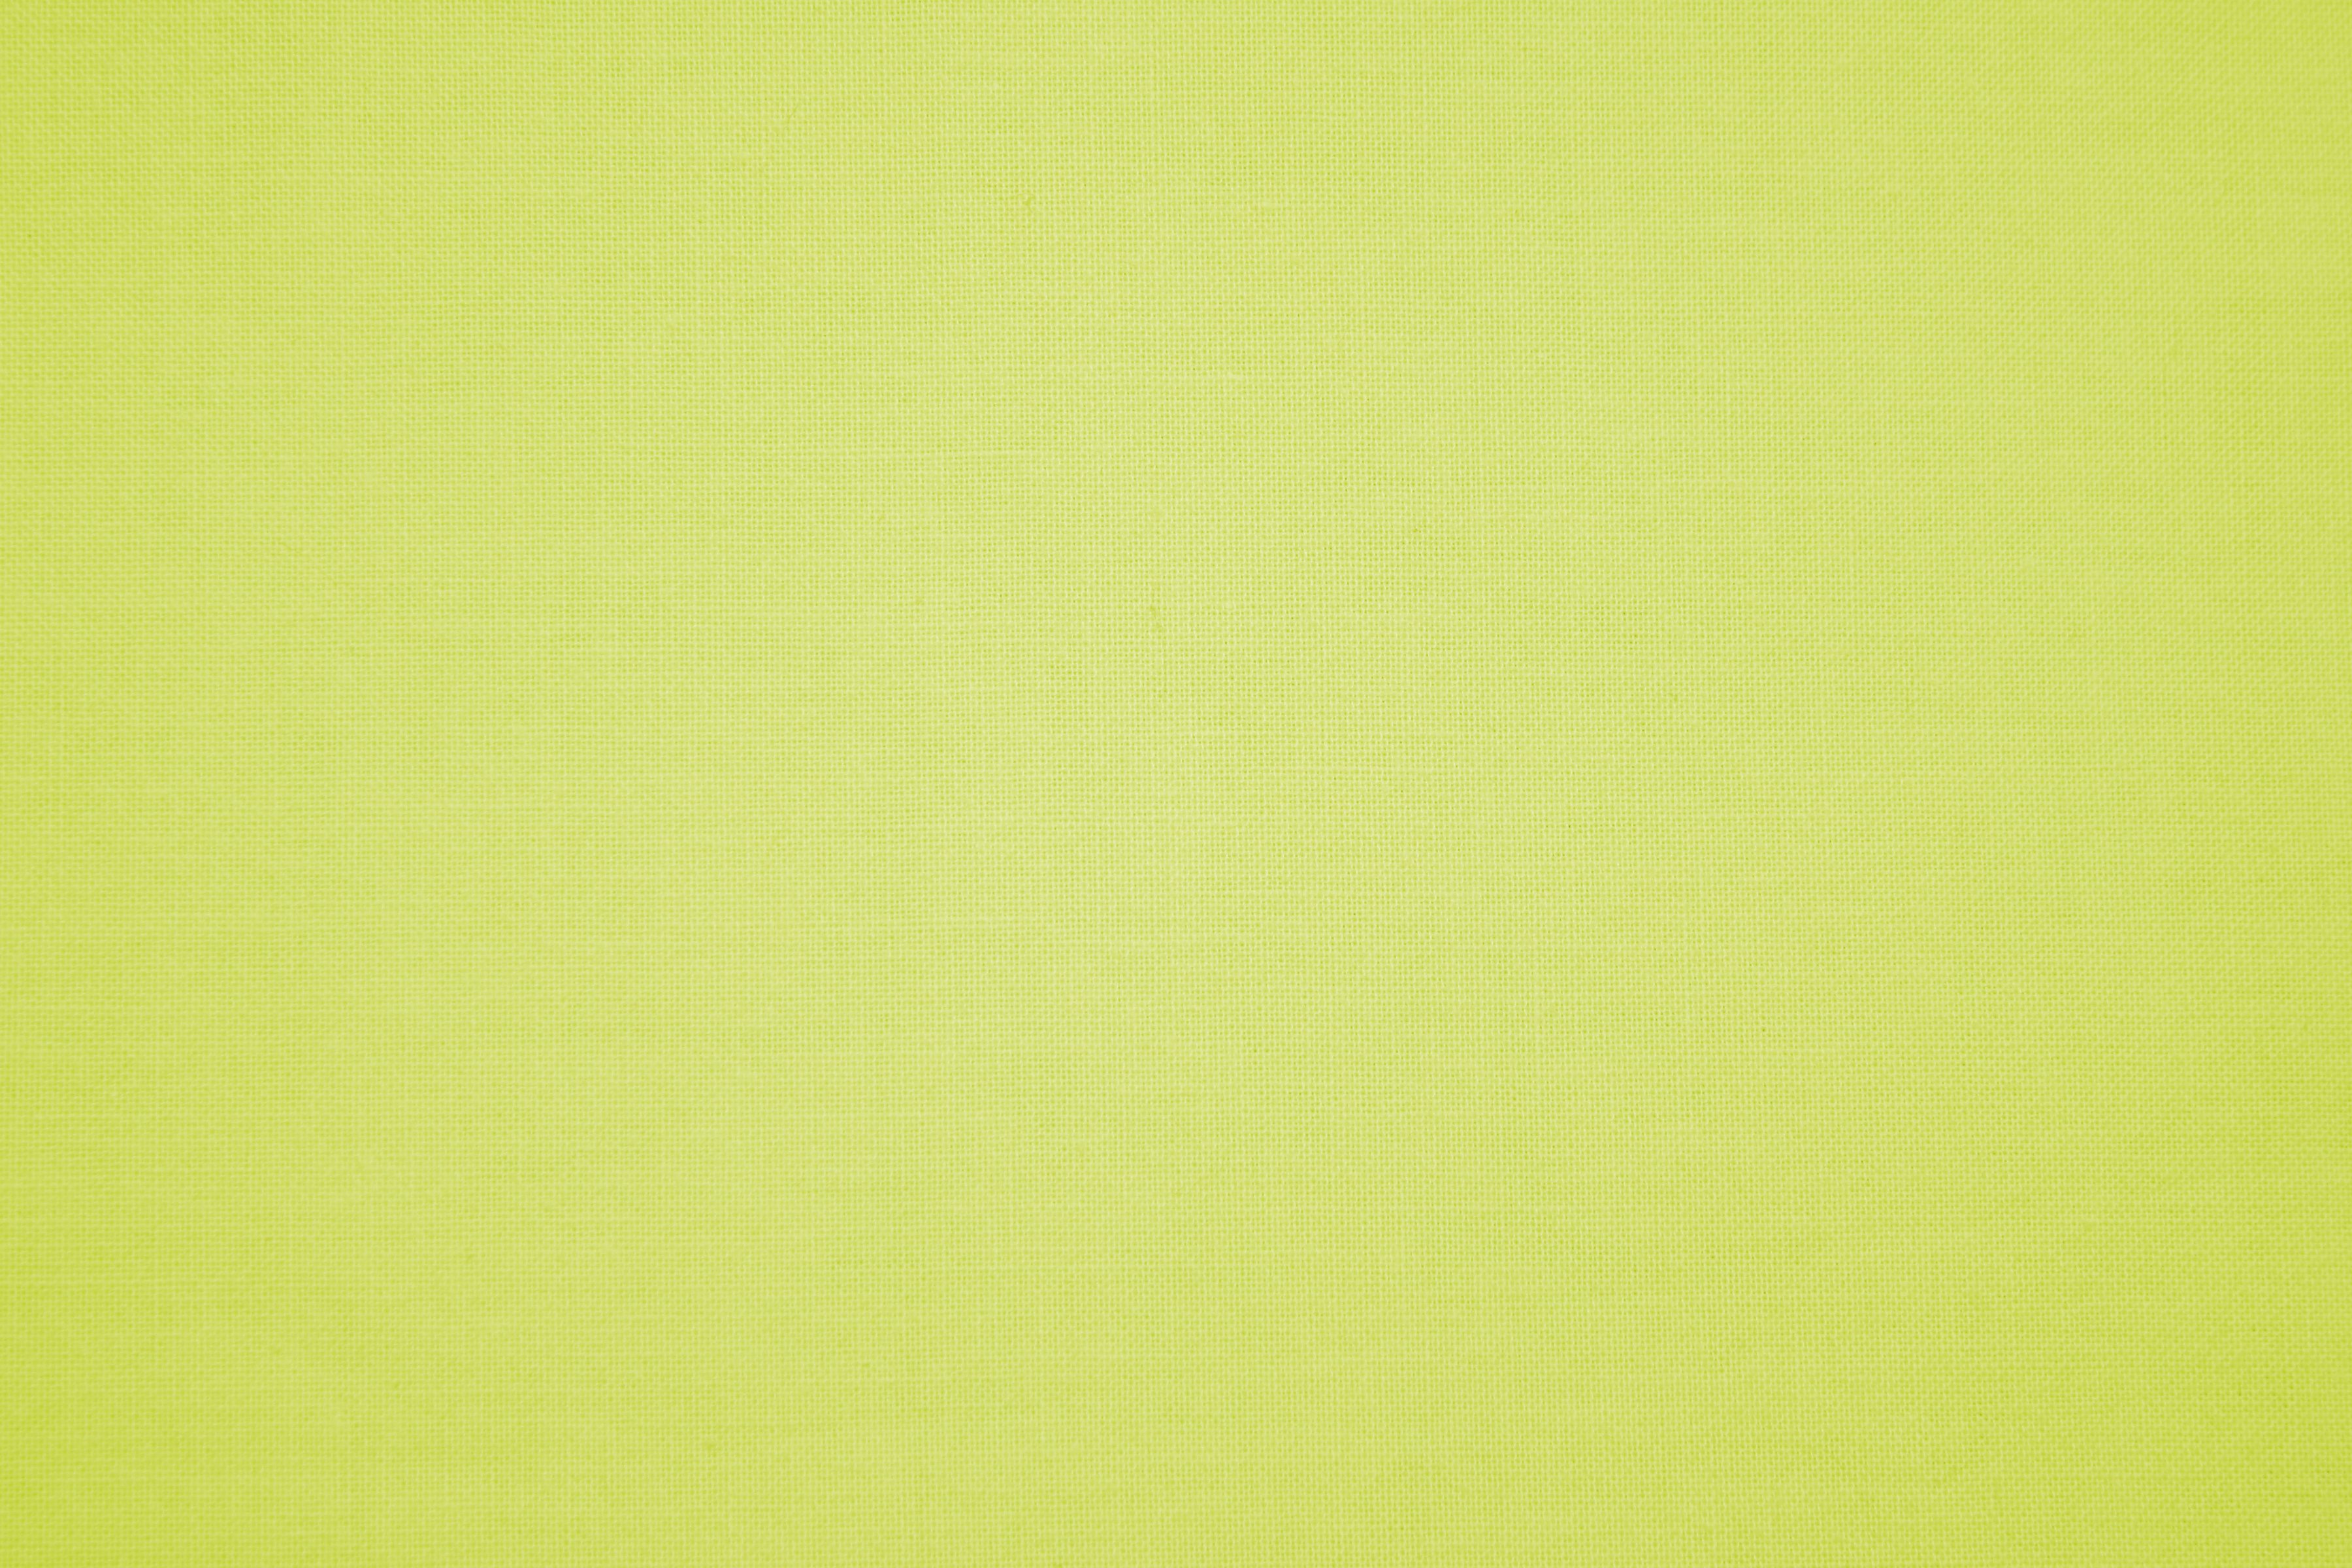 Yellow Green Canvas Fabric Texture Picture | Free ...